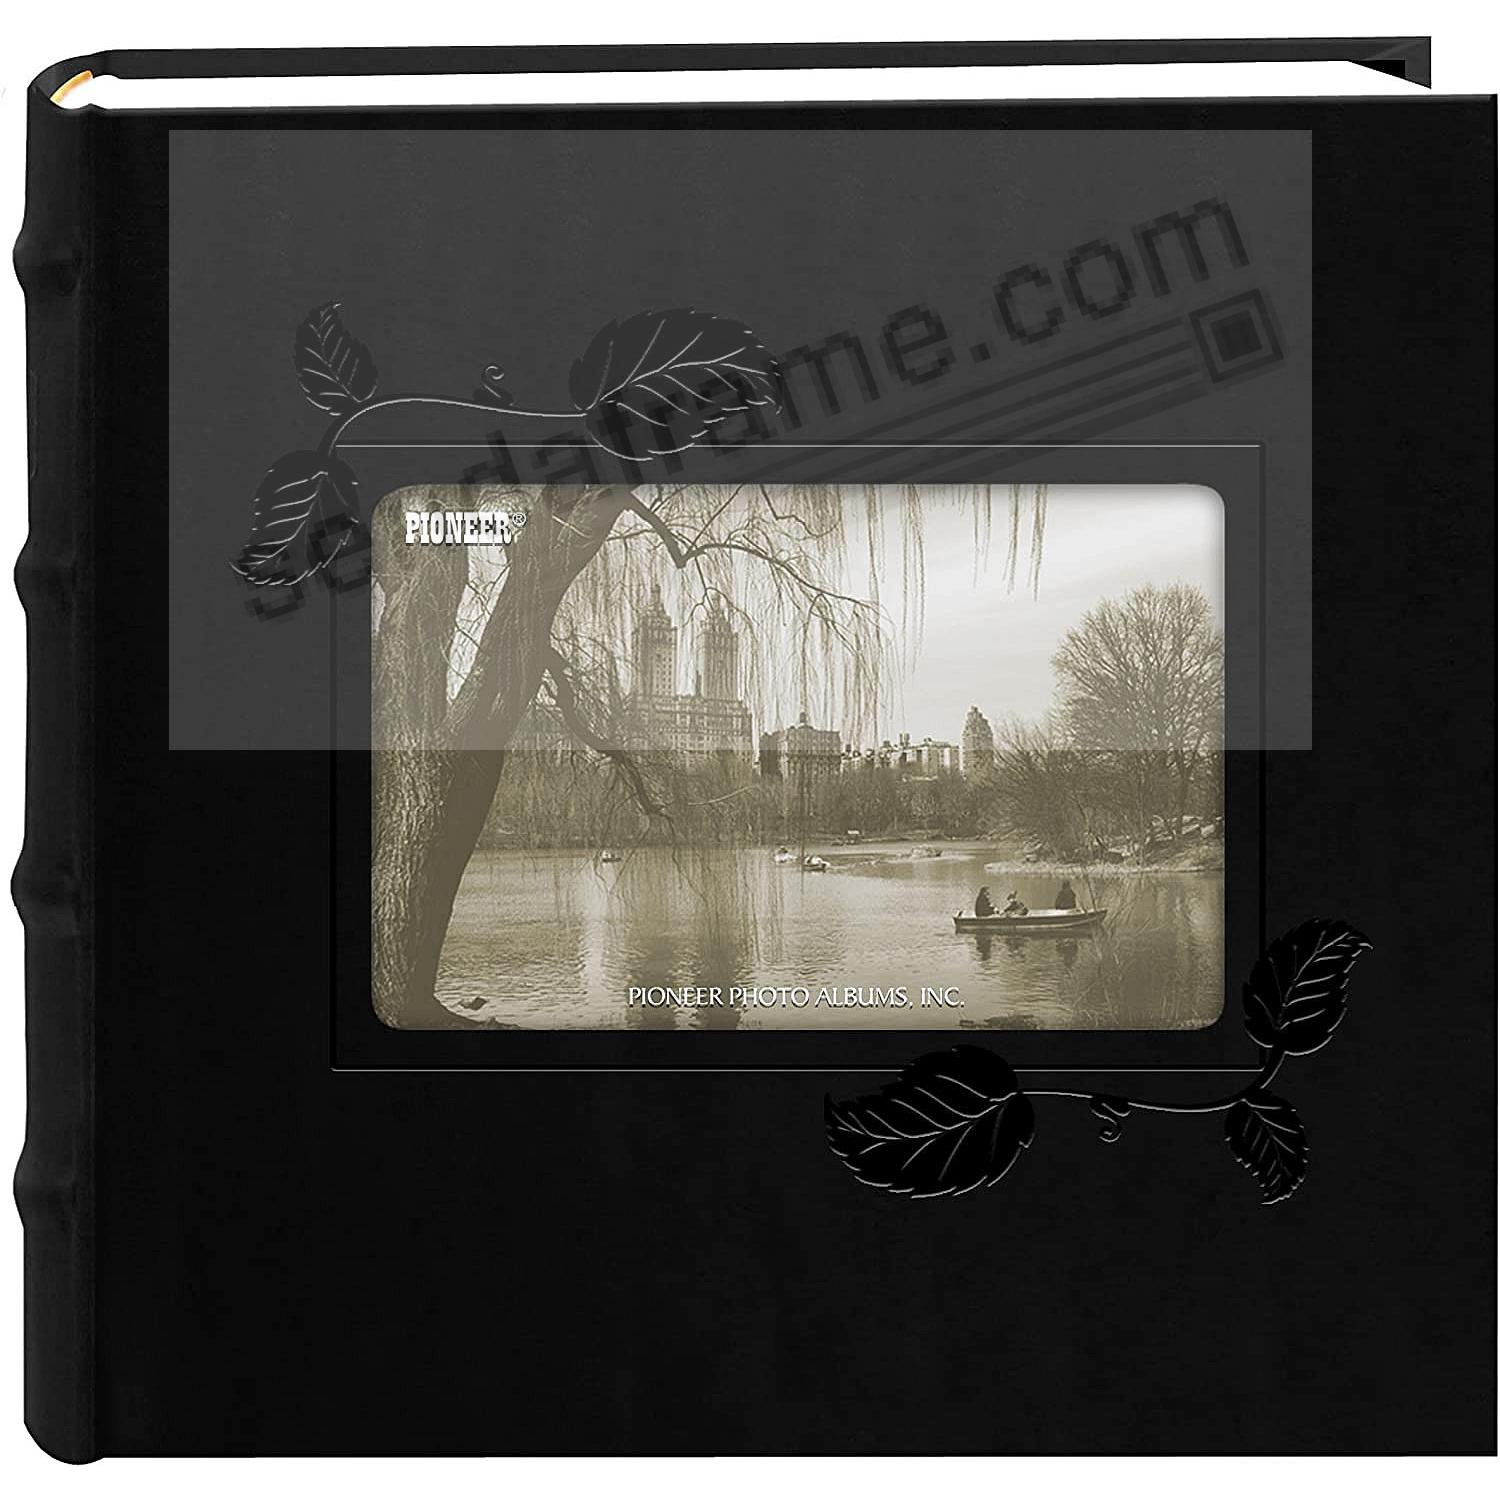 Black-IVY Embroidered 2-up photo album by Pioneer®